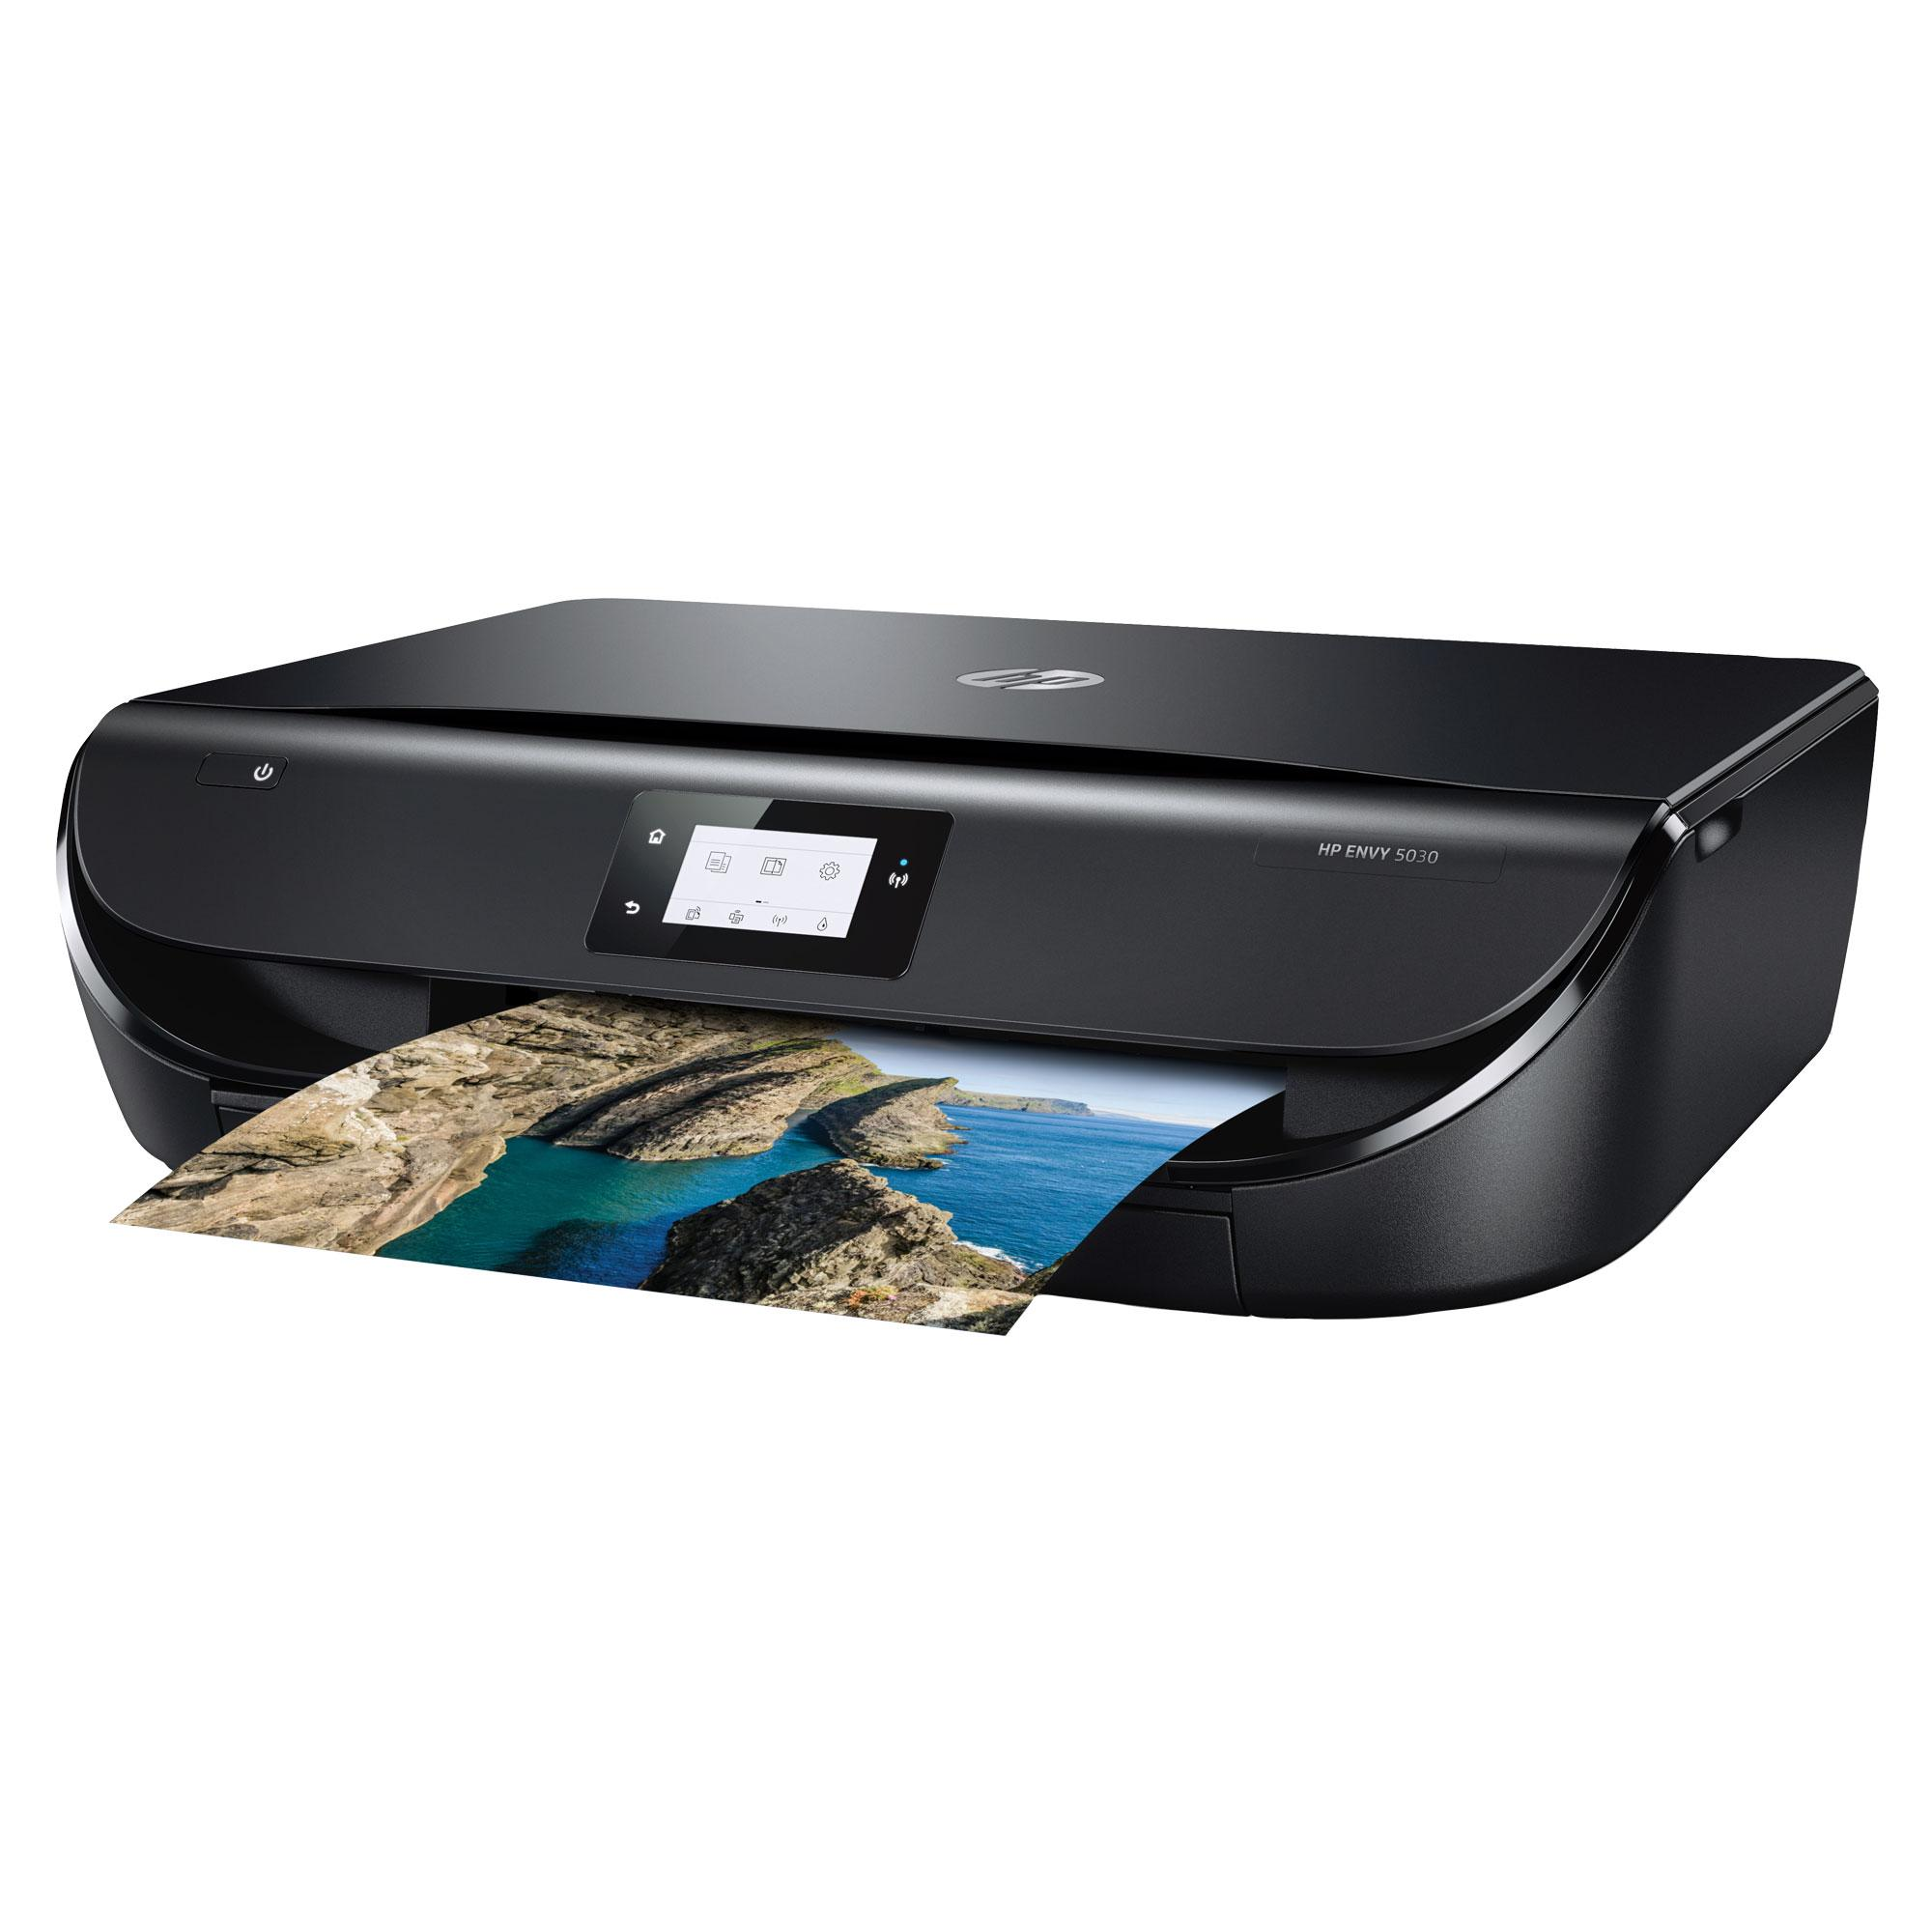 hp envy 5030 all in one printer 4 months instant ink trial black computers. Black Bedroom Furniture Sets. Home Design Ideas